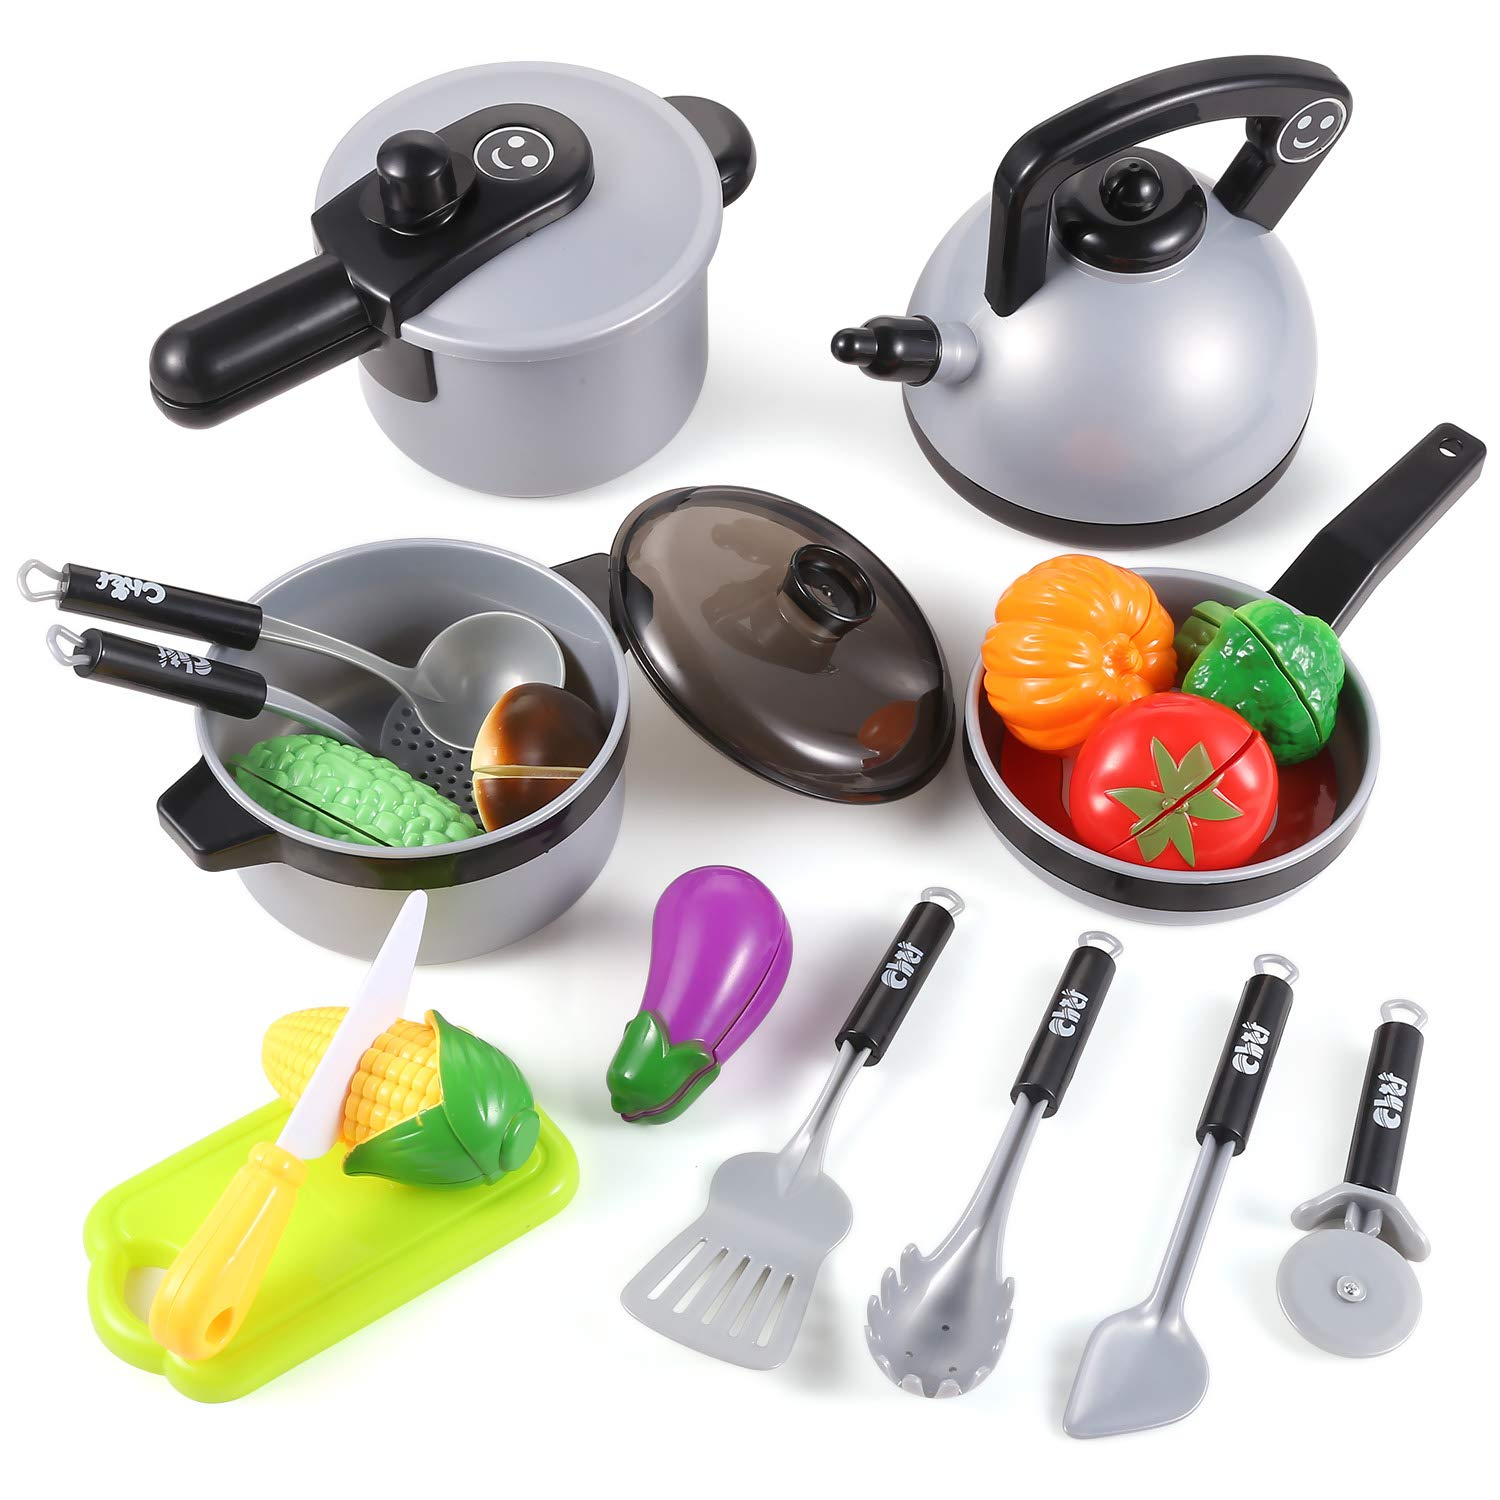 EFOSHM Toy Kitchen-Cooking Toys-Kitchen Playset-Kids Cookware with Healthy Cutting Vegetables, Knife, Cutting Board, Utensils Toy Kitchen Accessories for 3, 4,5, 6 Years Old Girls, Boys, Toddlers